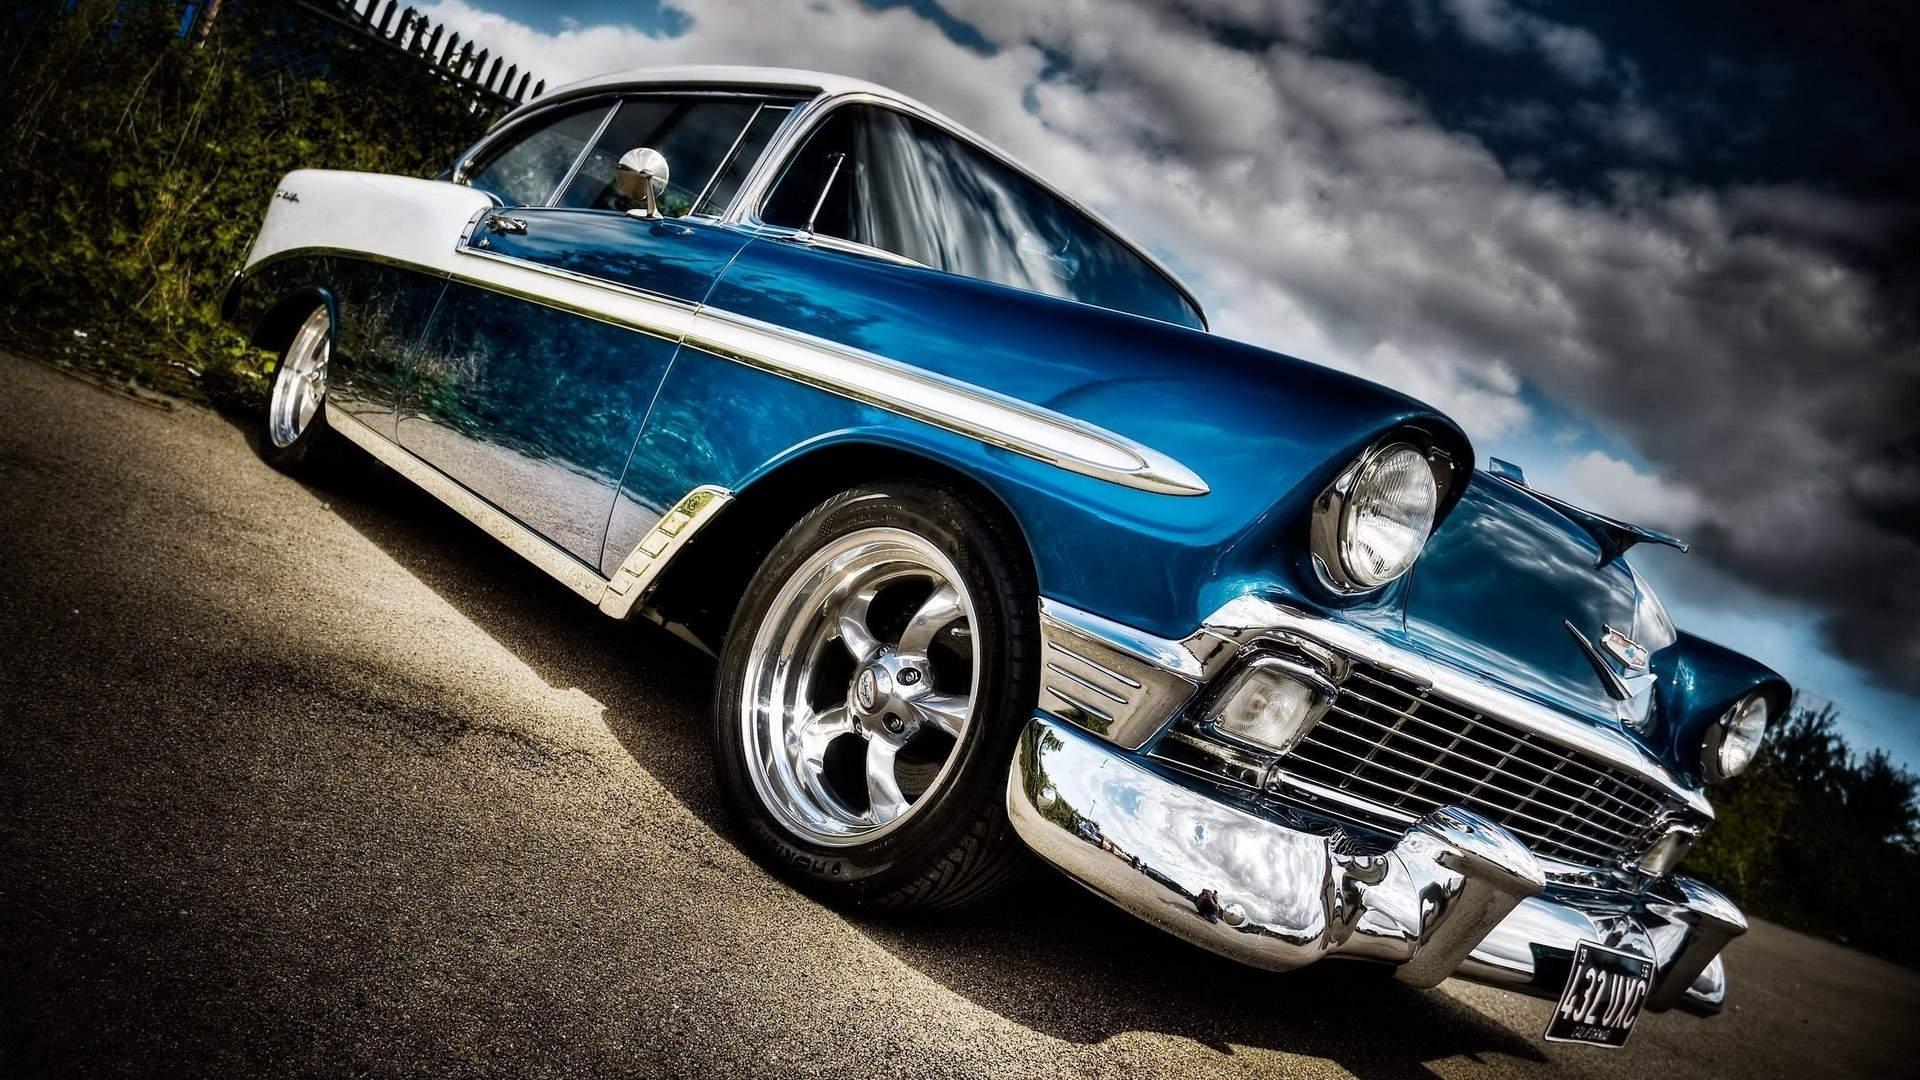 Download-HD-Chevy-Wallpapers